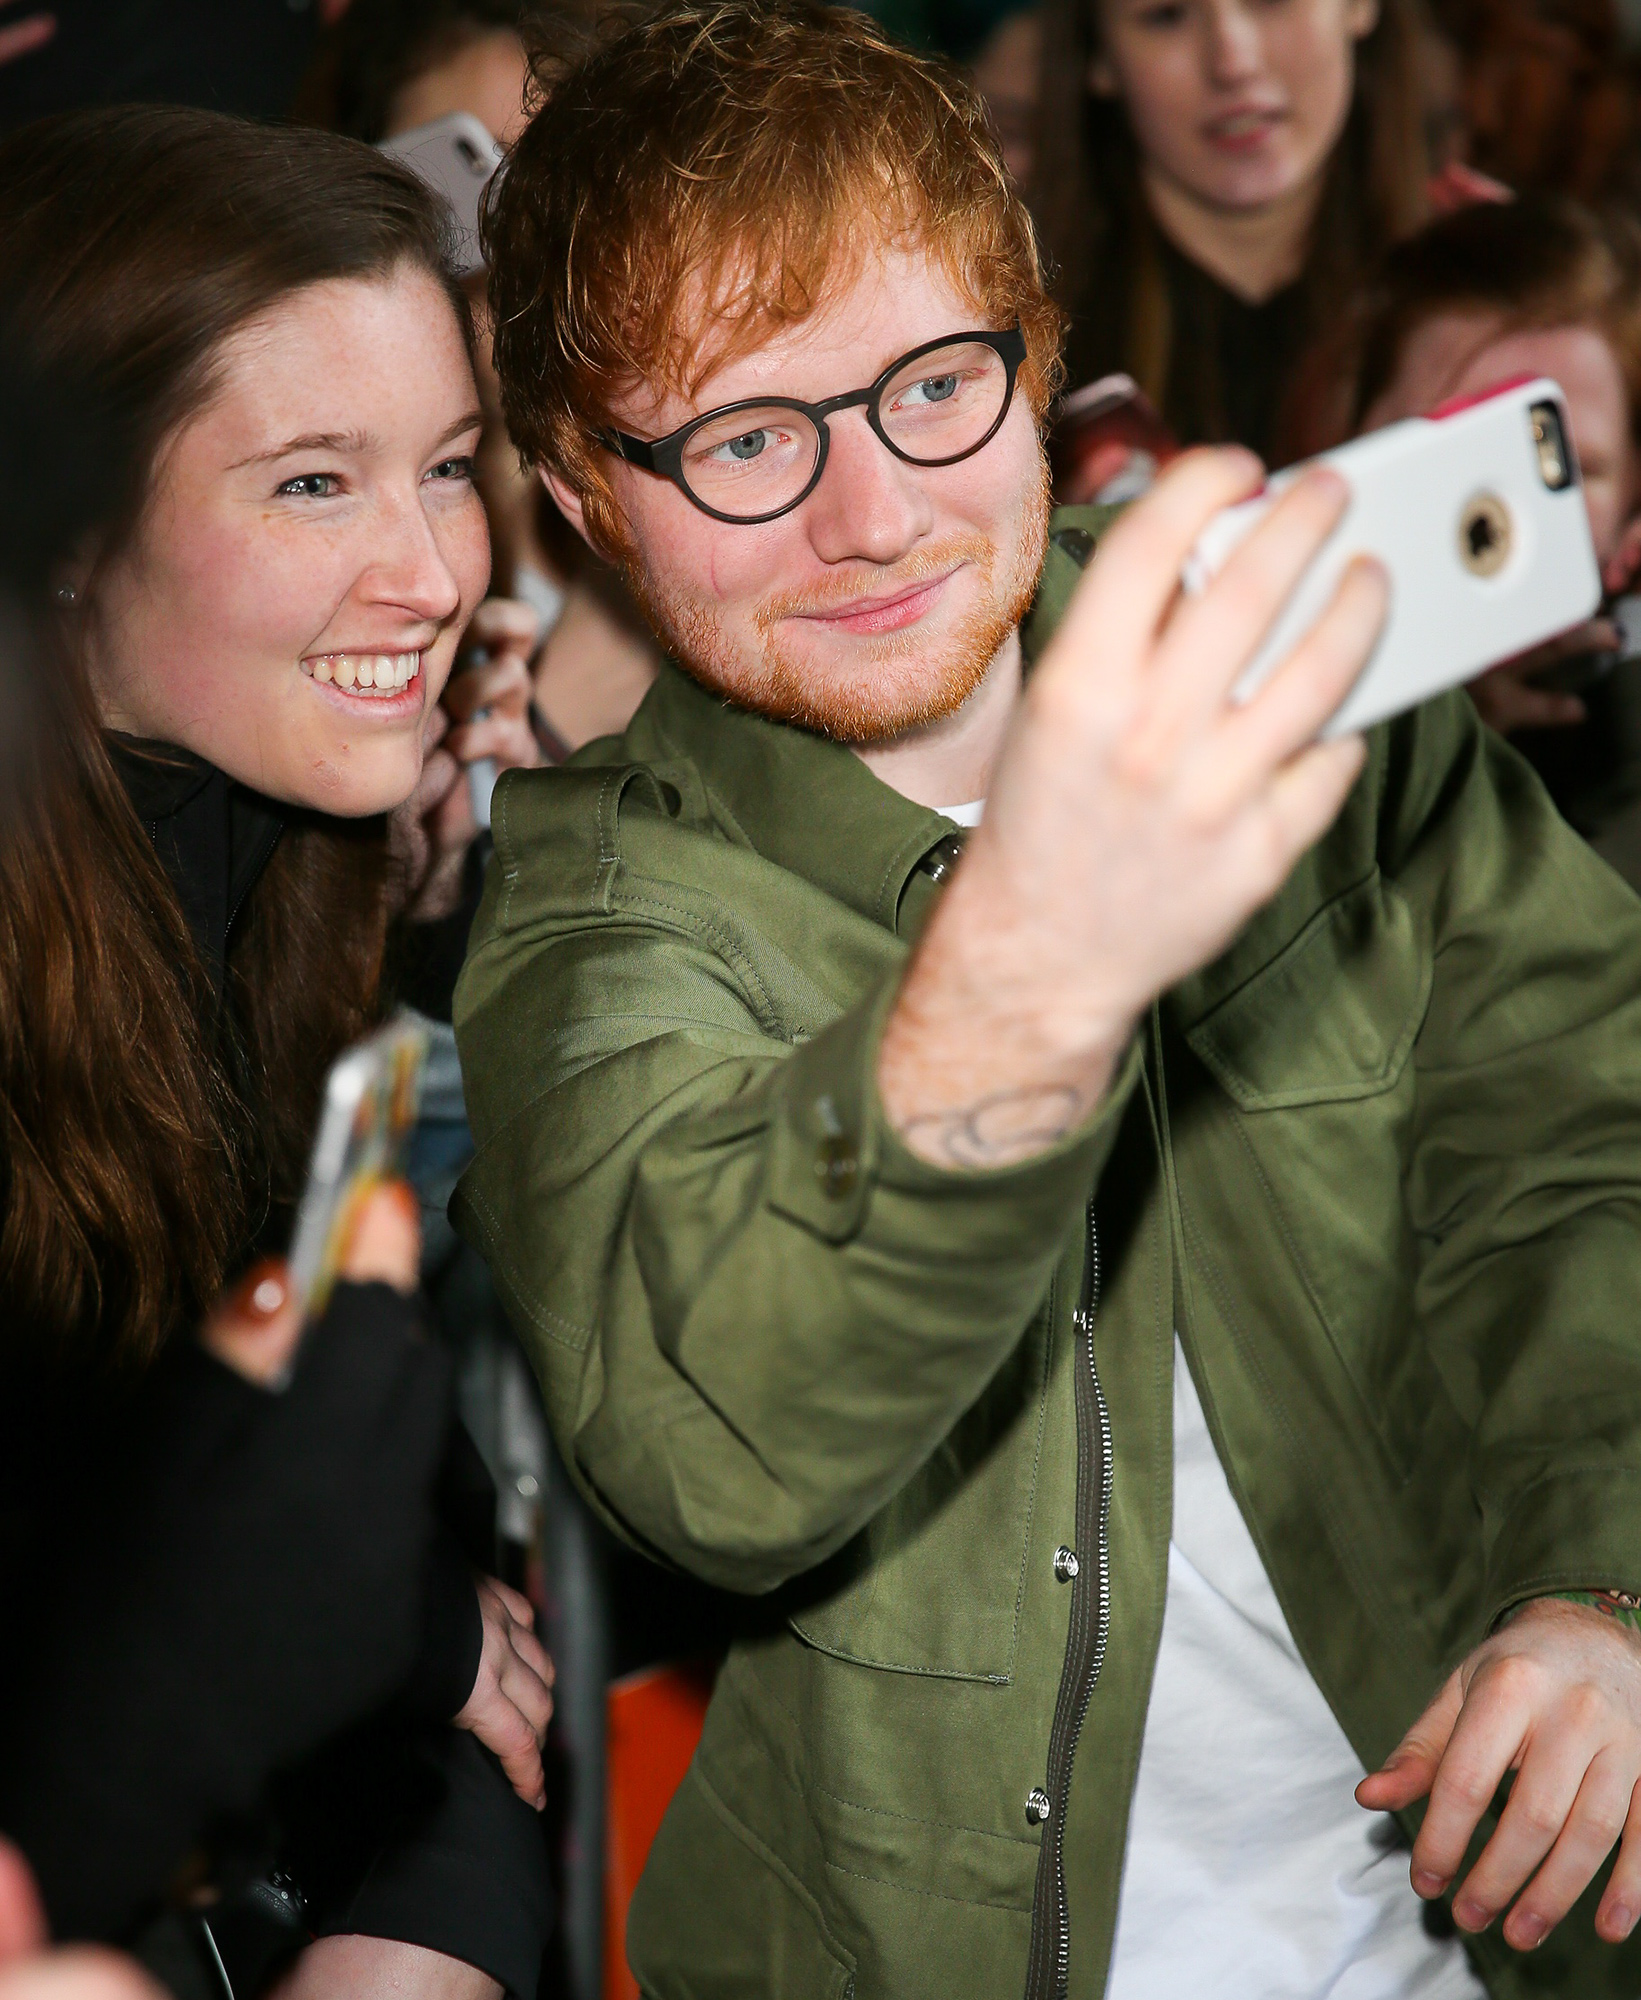 Singer Ed Sheeran arriving at BBC Radio One studios to perform on the Live Lounge - London